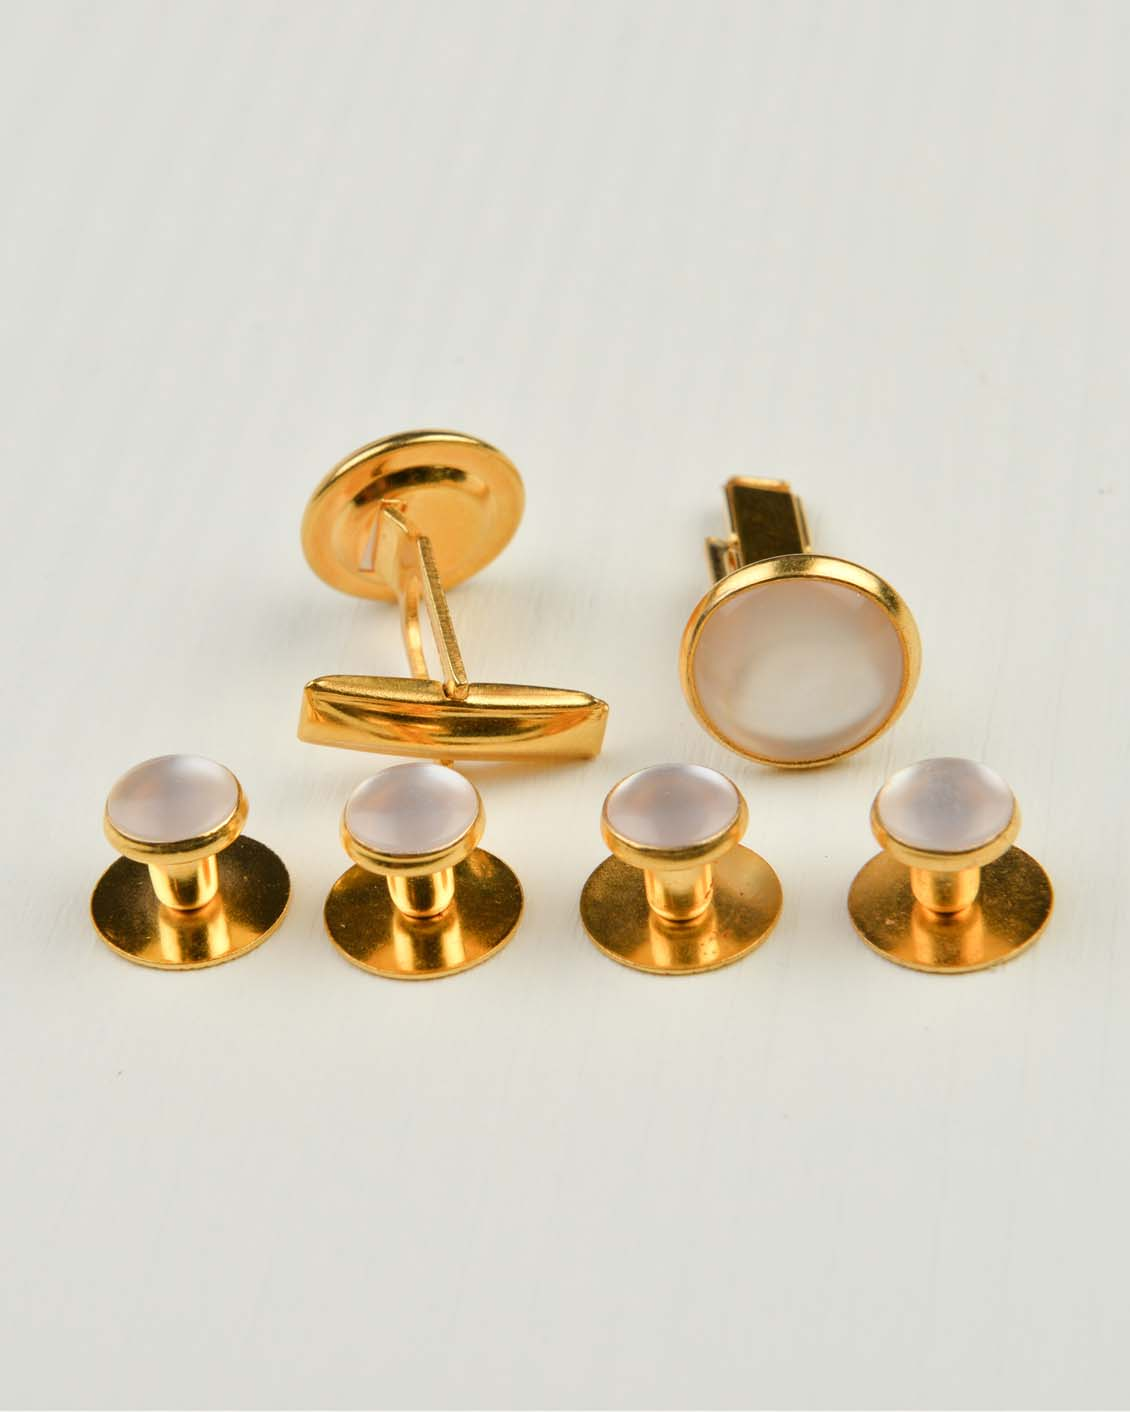 Tuxedo.ca - White and Gold Button Studs & Cuff Links